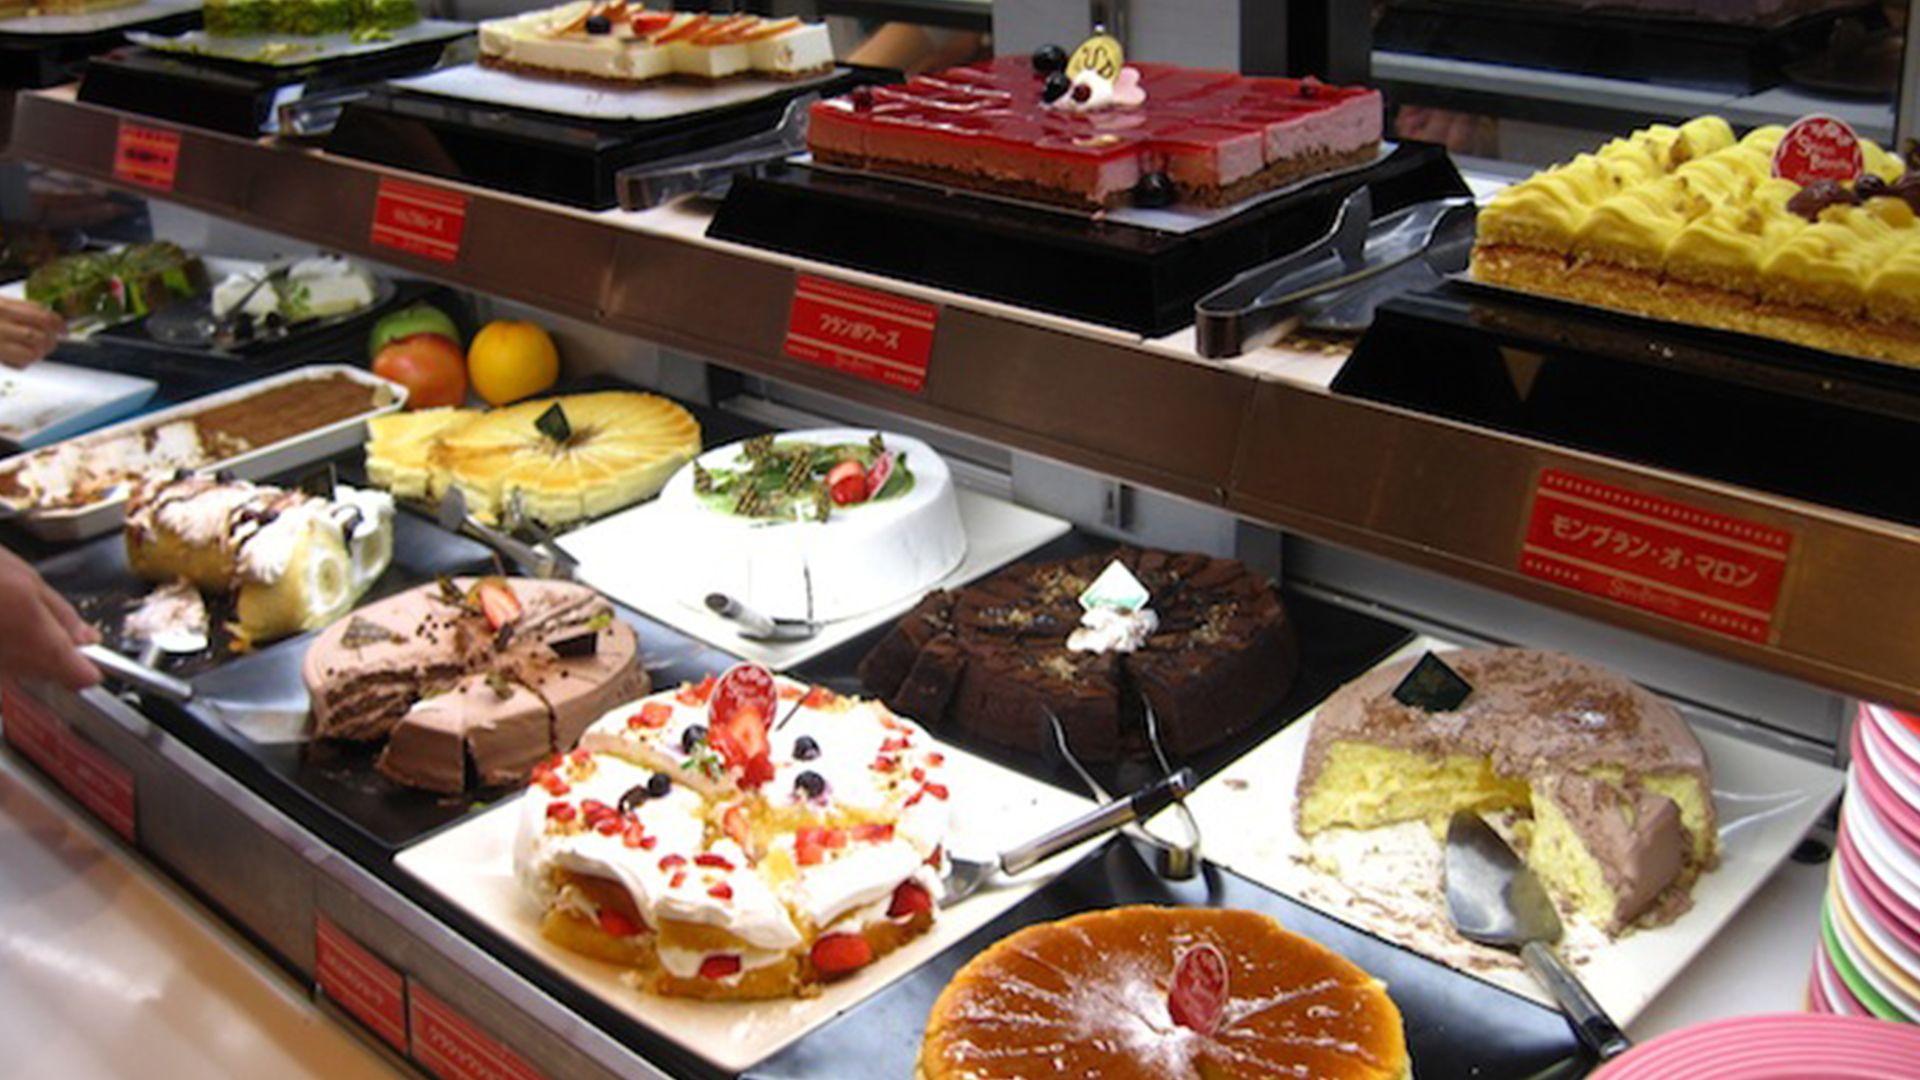 The Best Places And Everything About All You Can Eat Tabehoudai In Japan In 2020 Dessert Restaurants Eat Filling Recipes